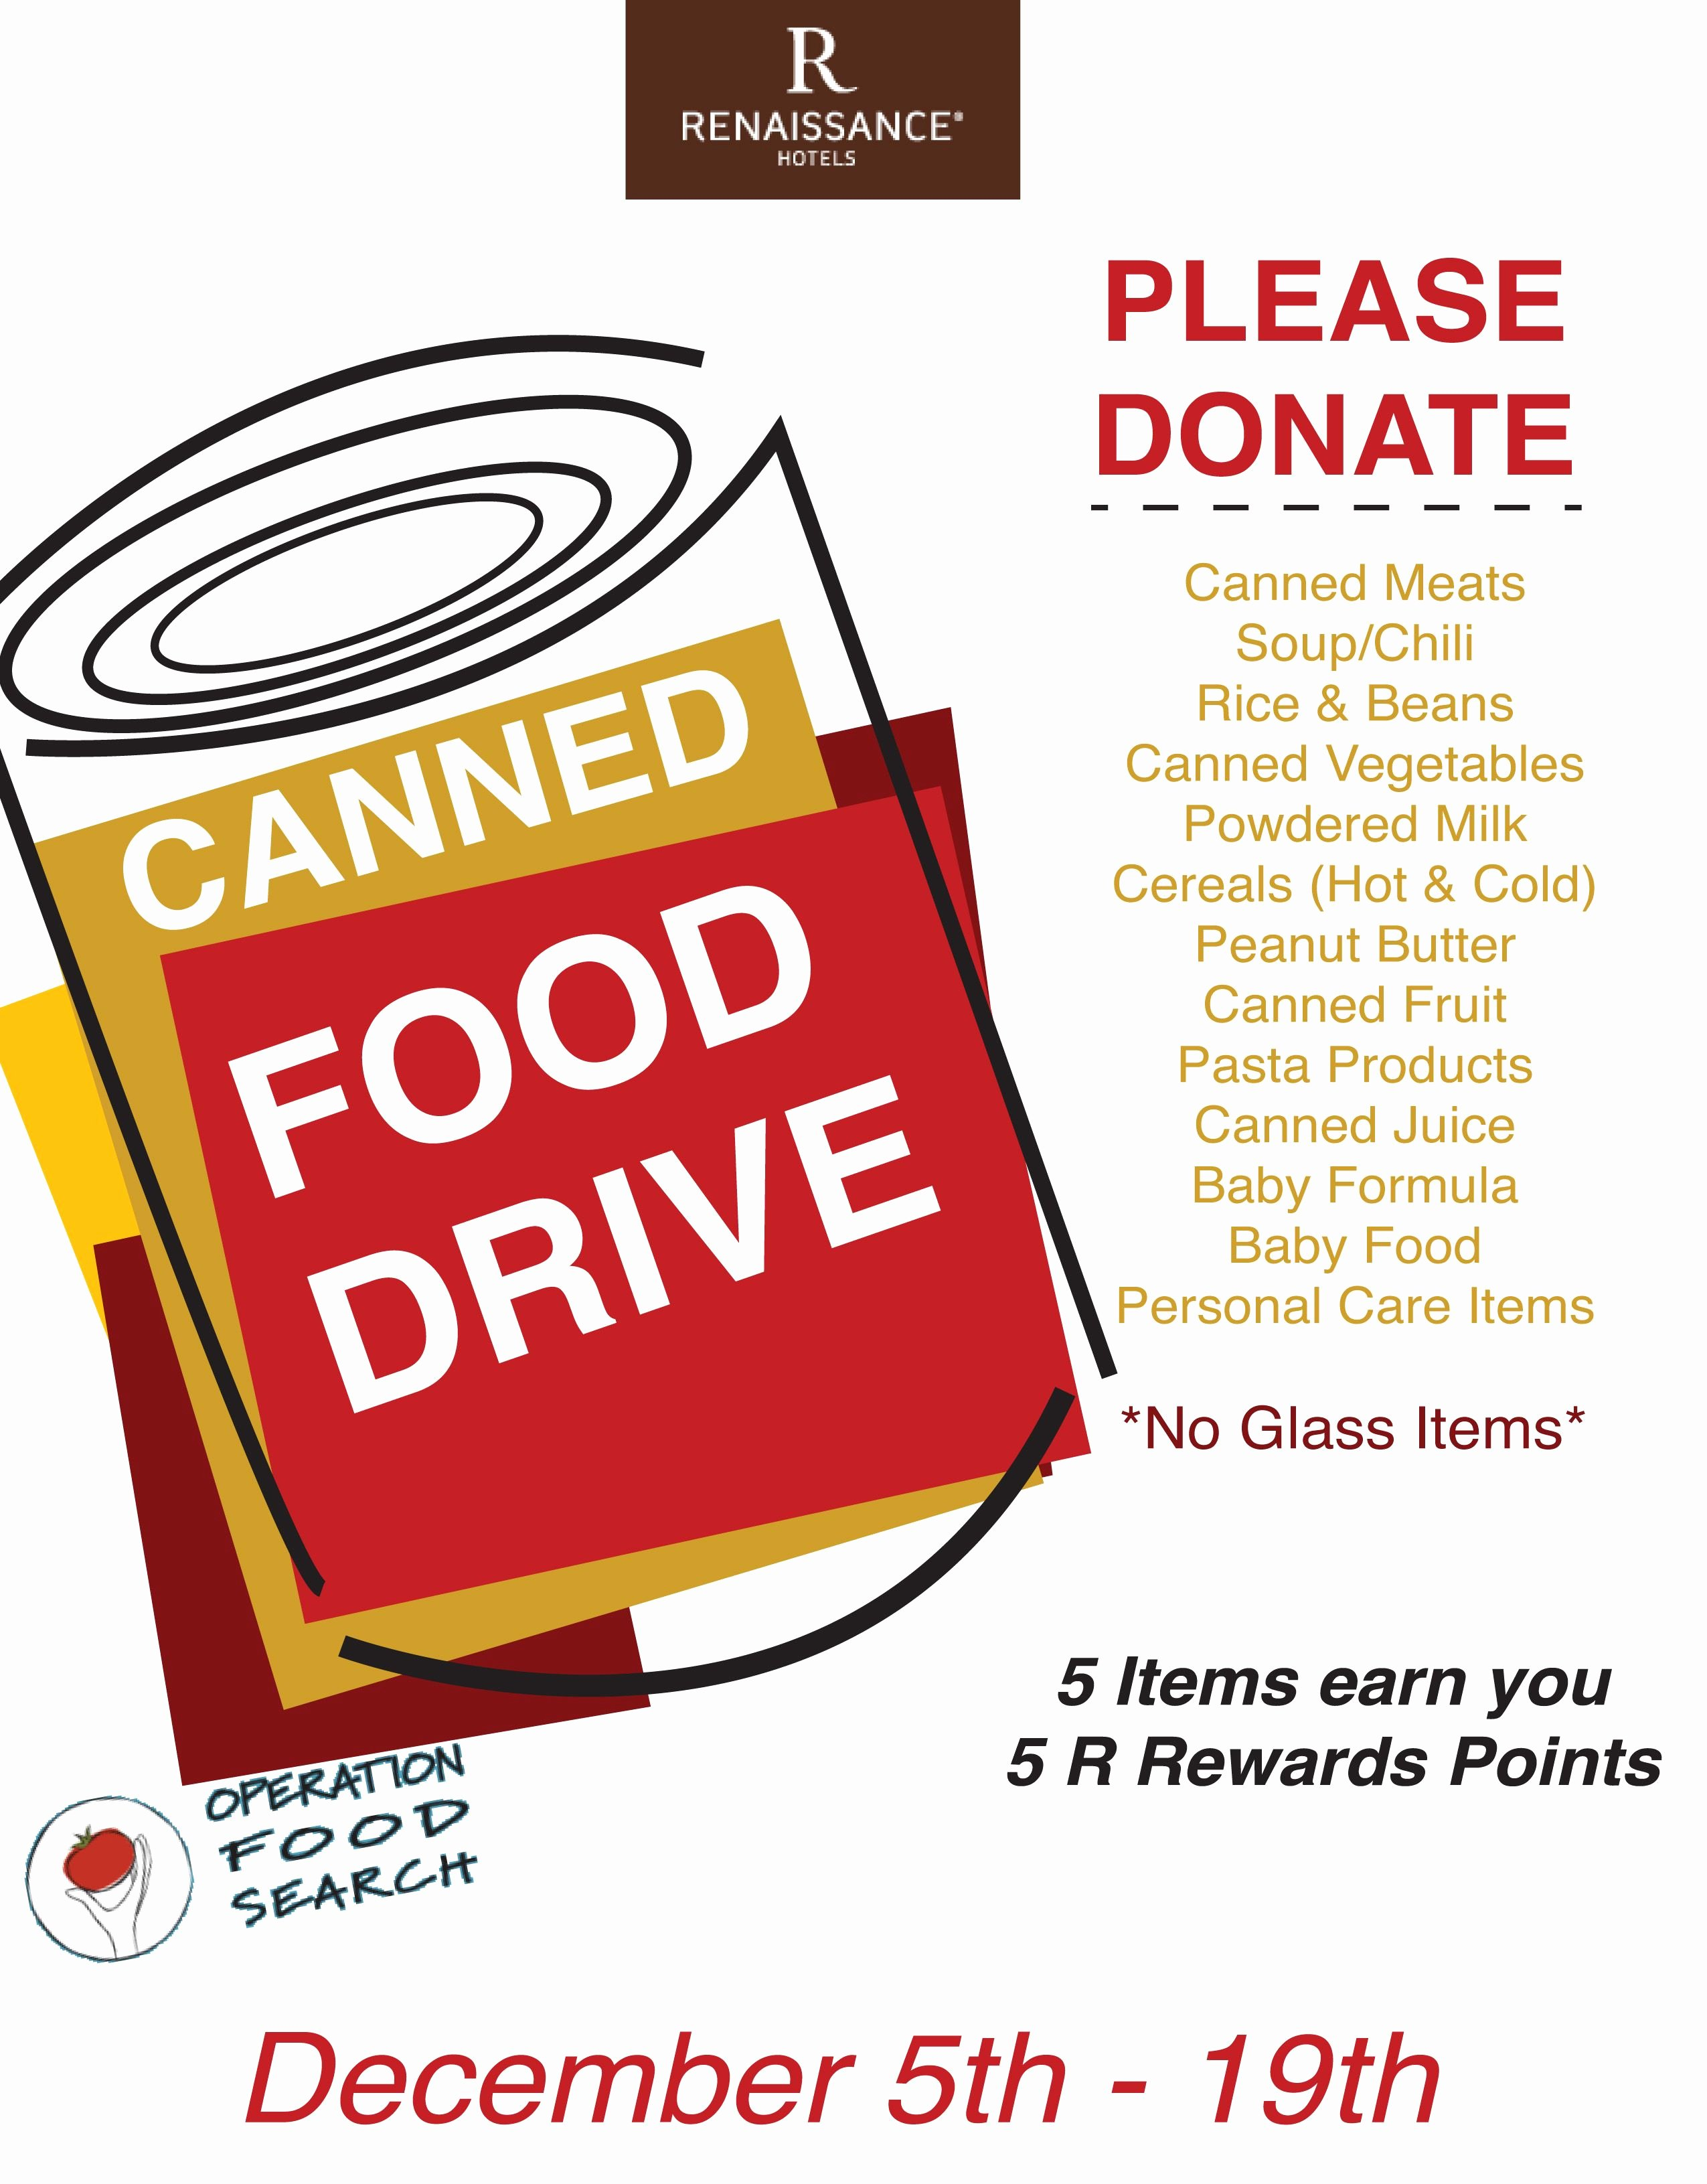 Canned Food Drive Flyer Fresh Mcr Designz Was Able to Collaborate with the Renaissance